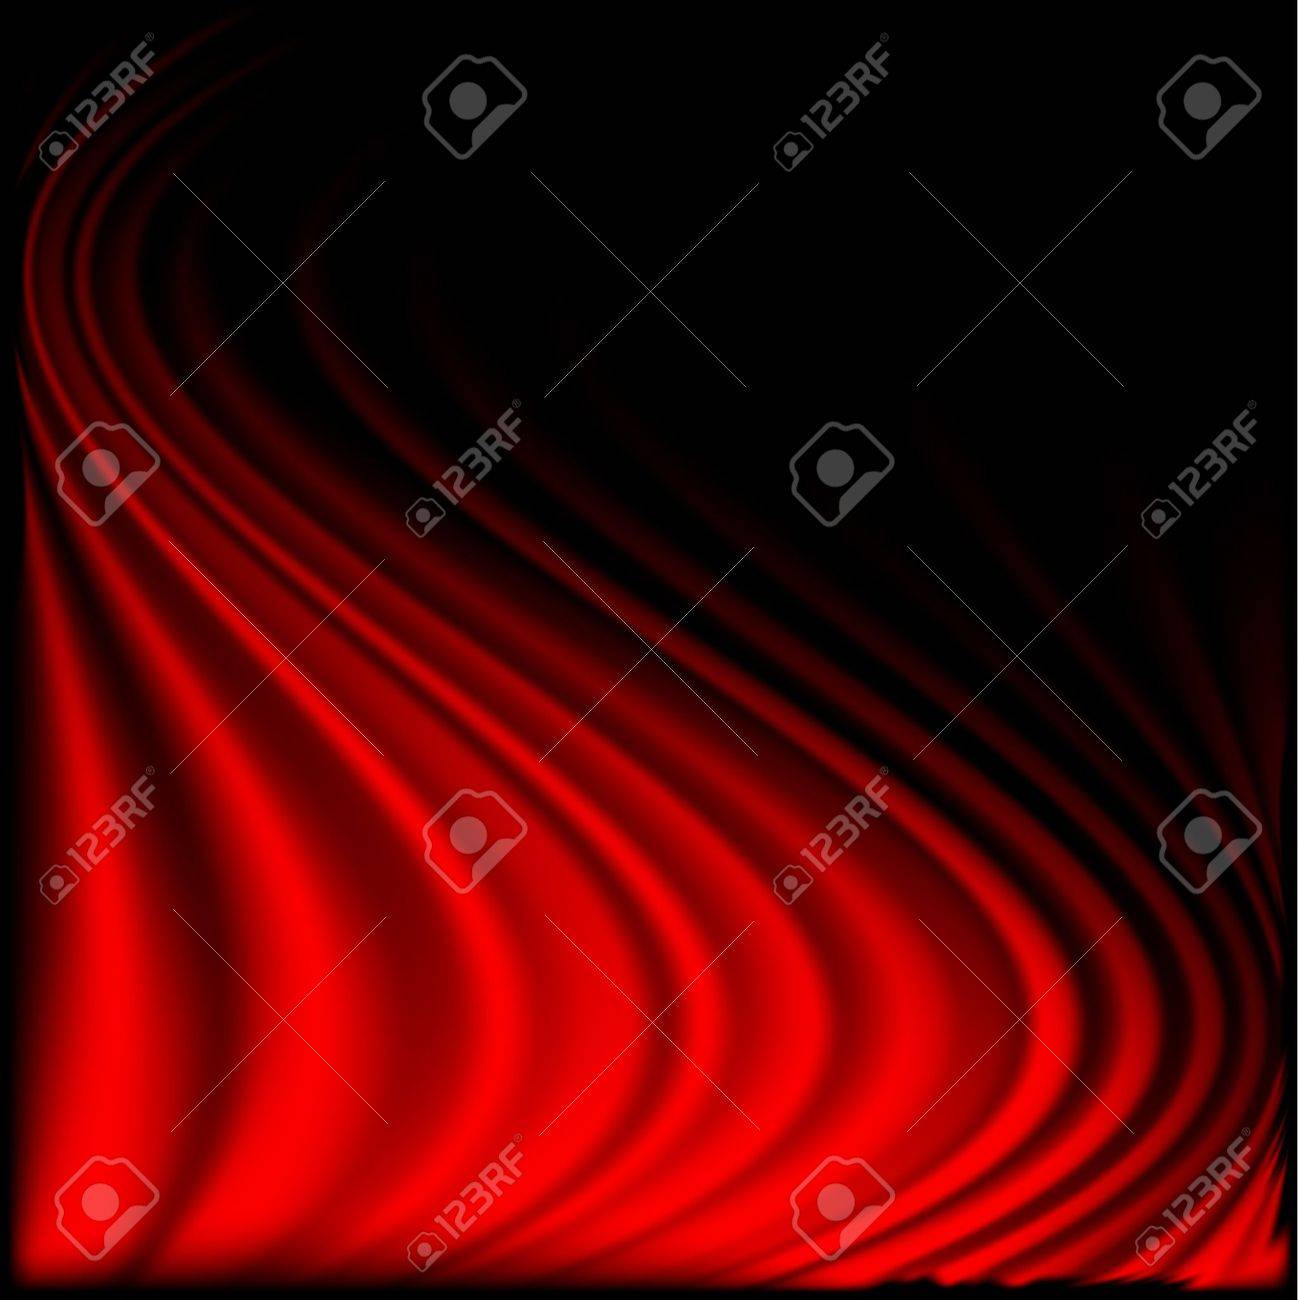 Red curtain background on black.Eps10 - 11812863